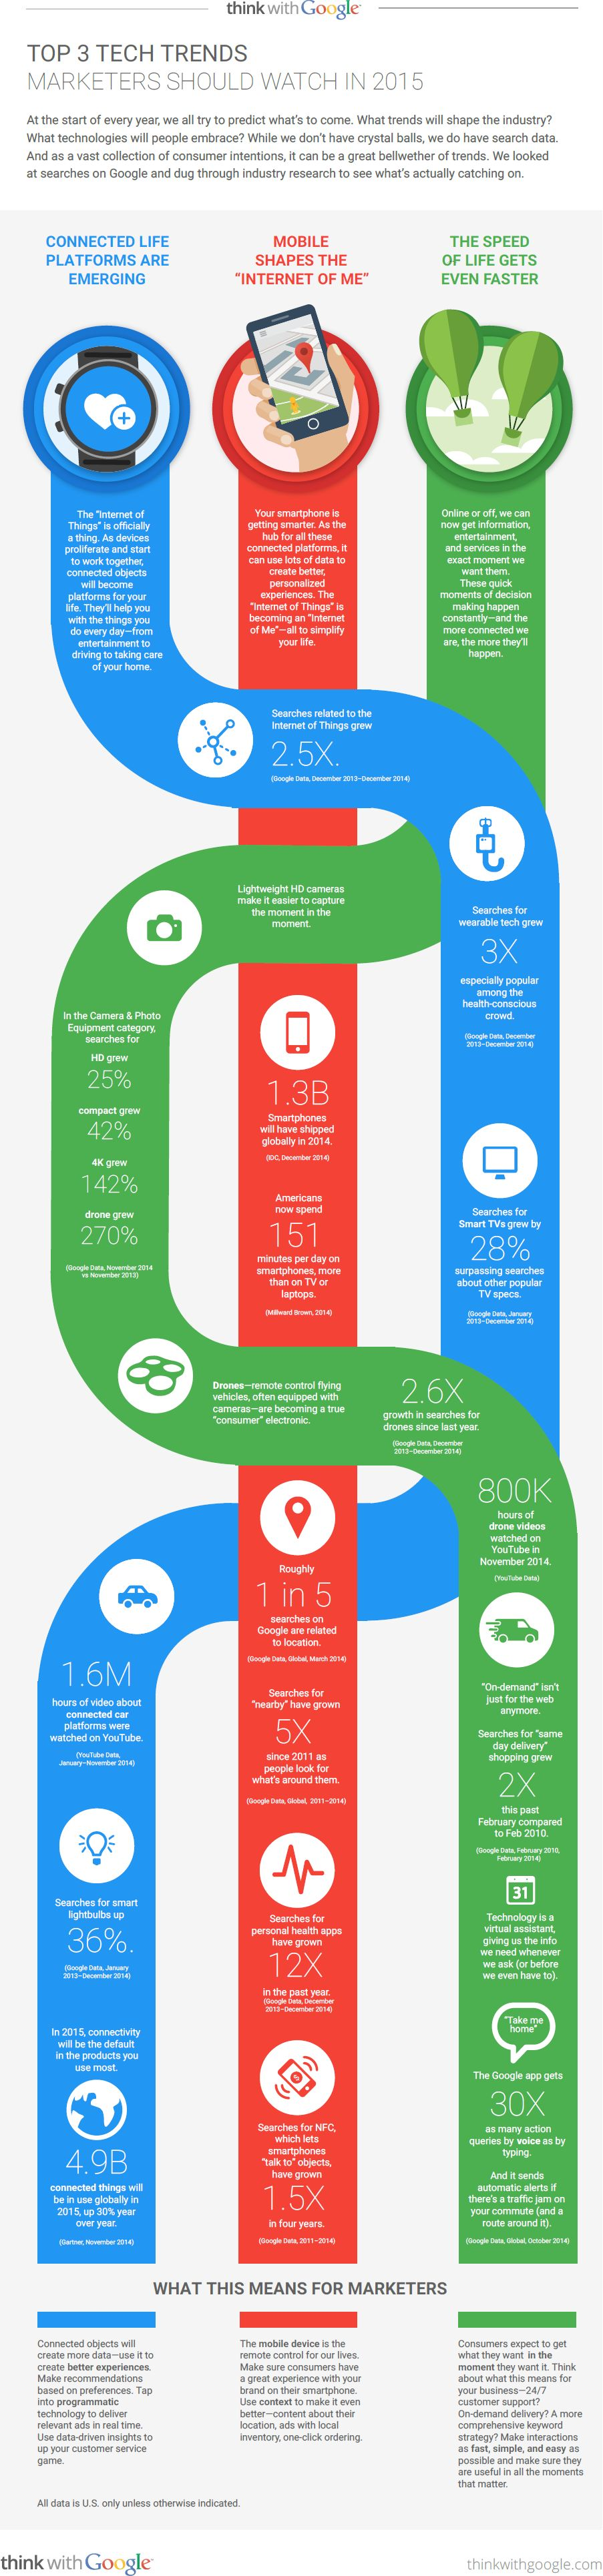 Top-3-Trends-for-Marketers-Google-Infographic